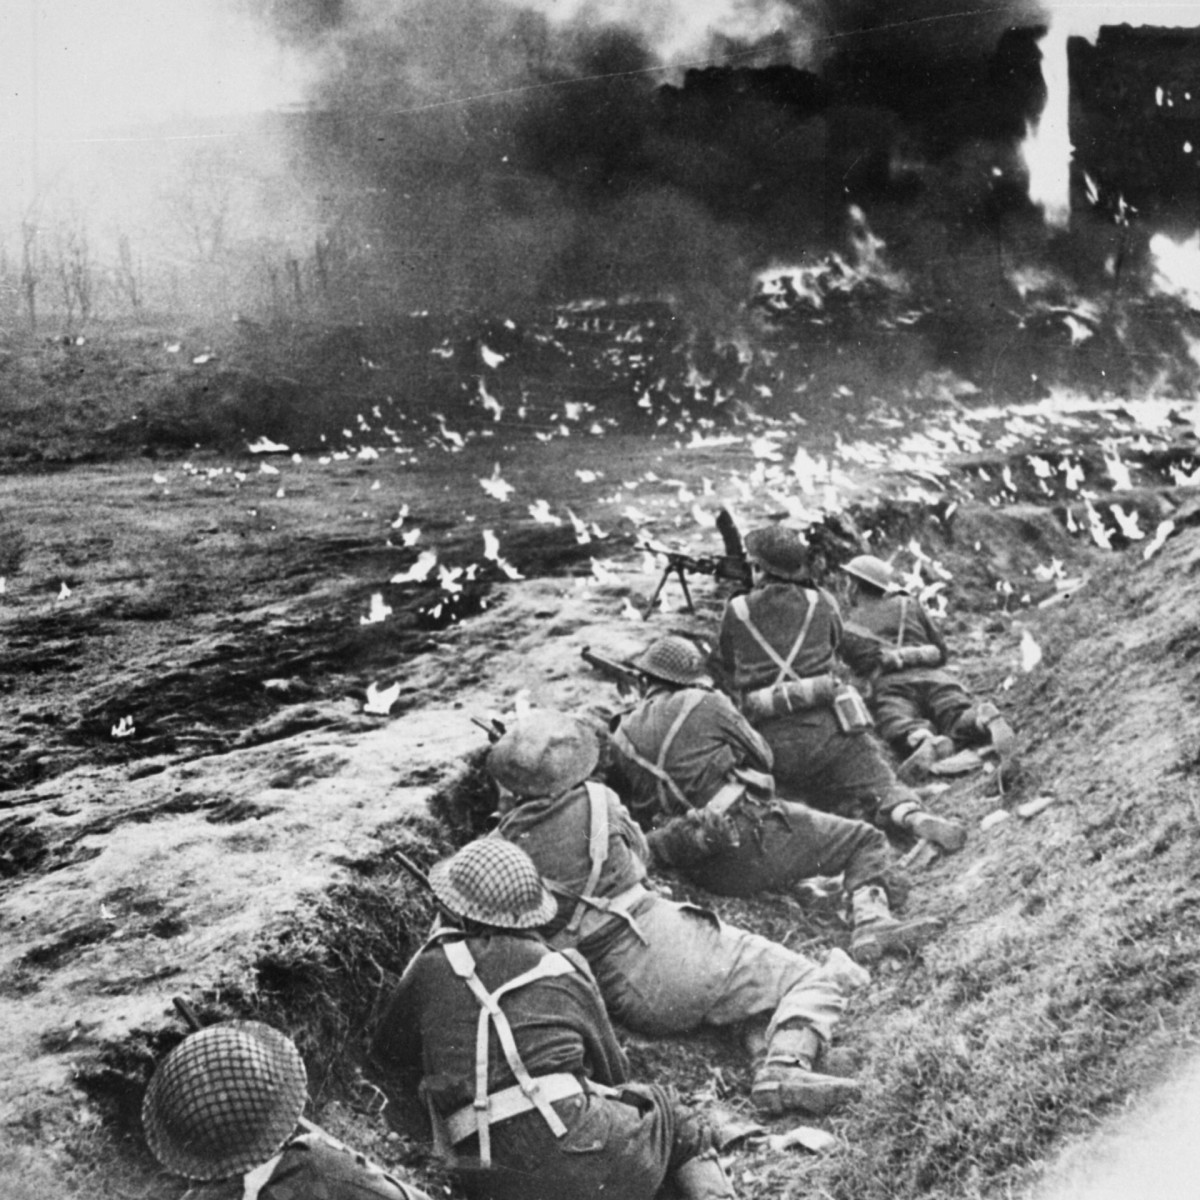 British Troops pinned down by German fire during Operation Market Garden.